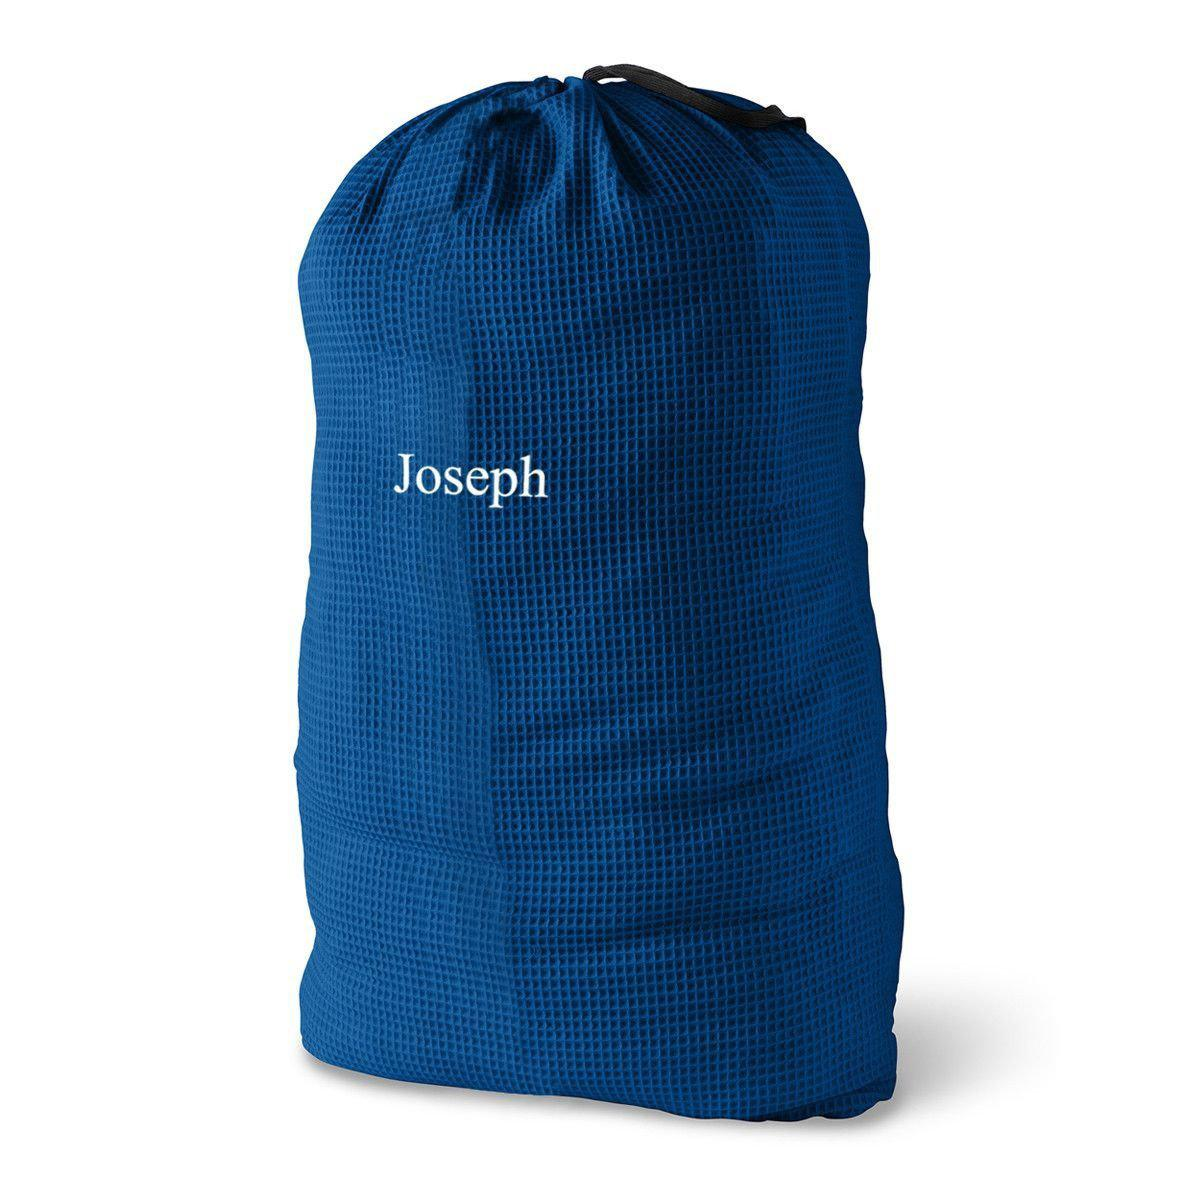 Personalized-Waffle-Knit-Laundry-Bags